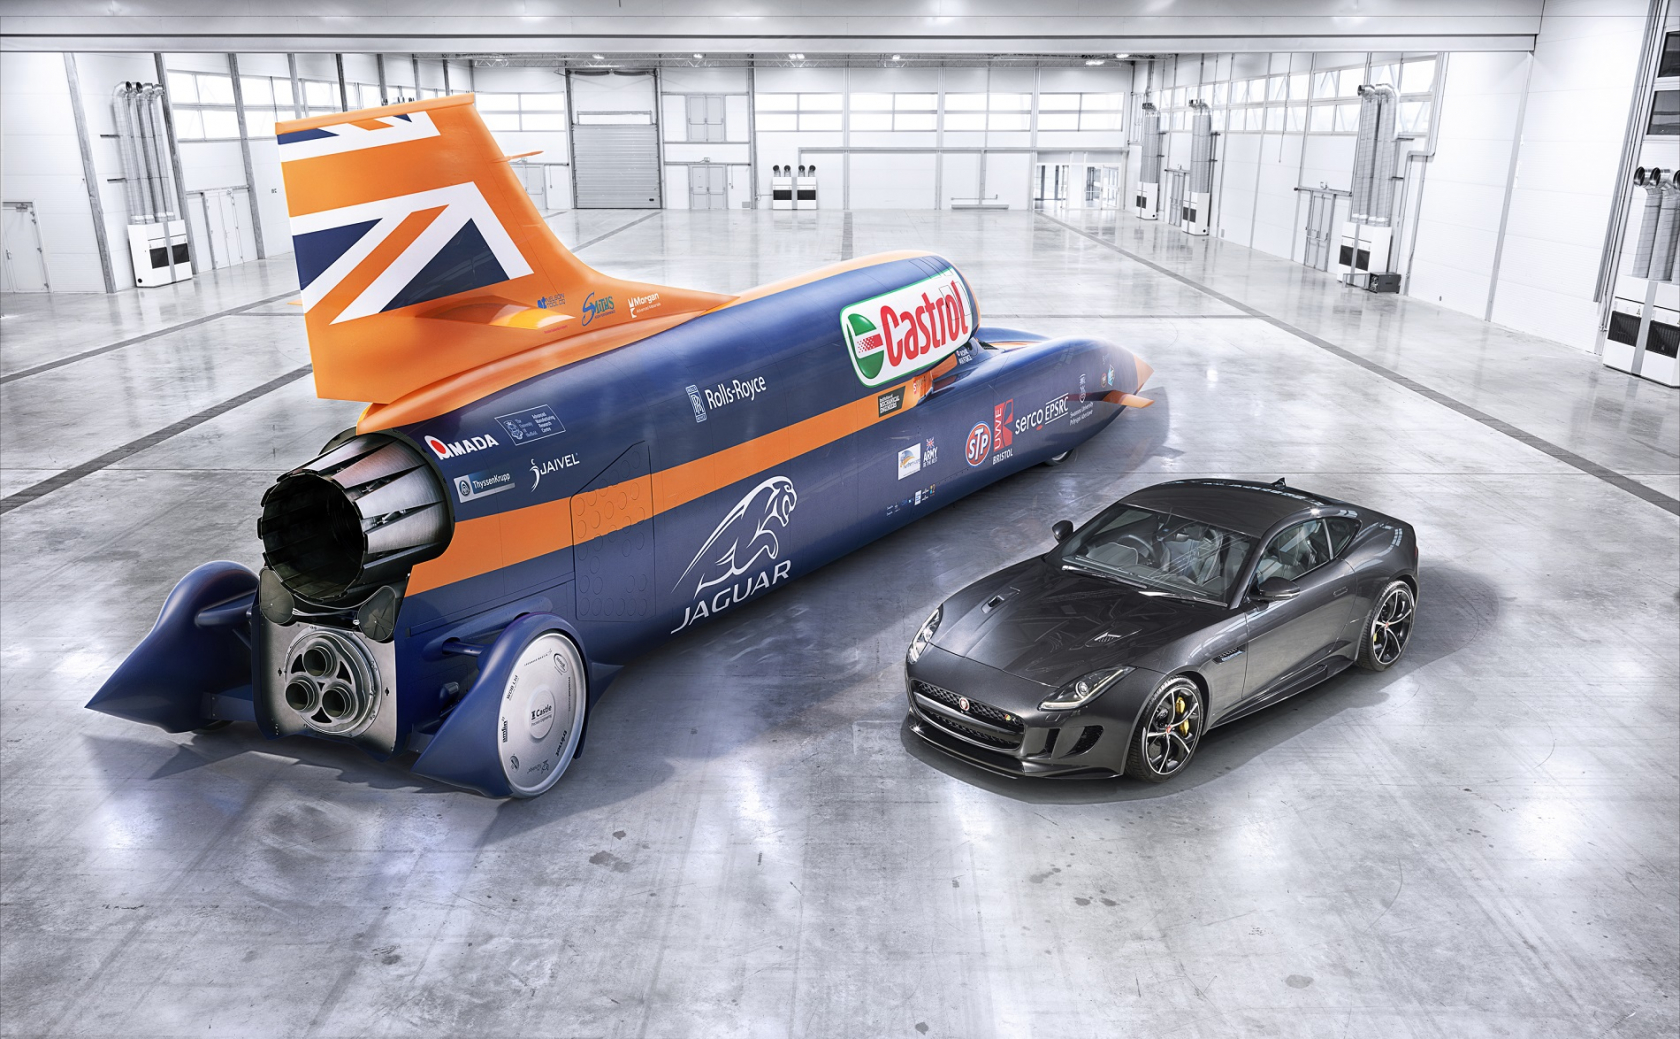 first public tests of the bloodhound, a car designed to hit 1000mph